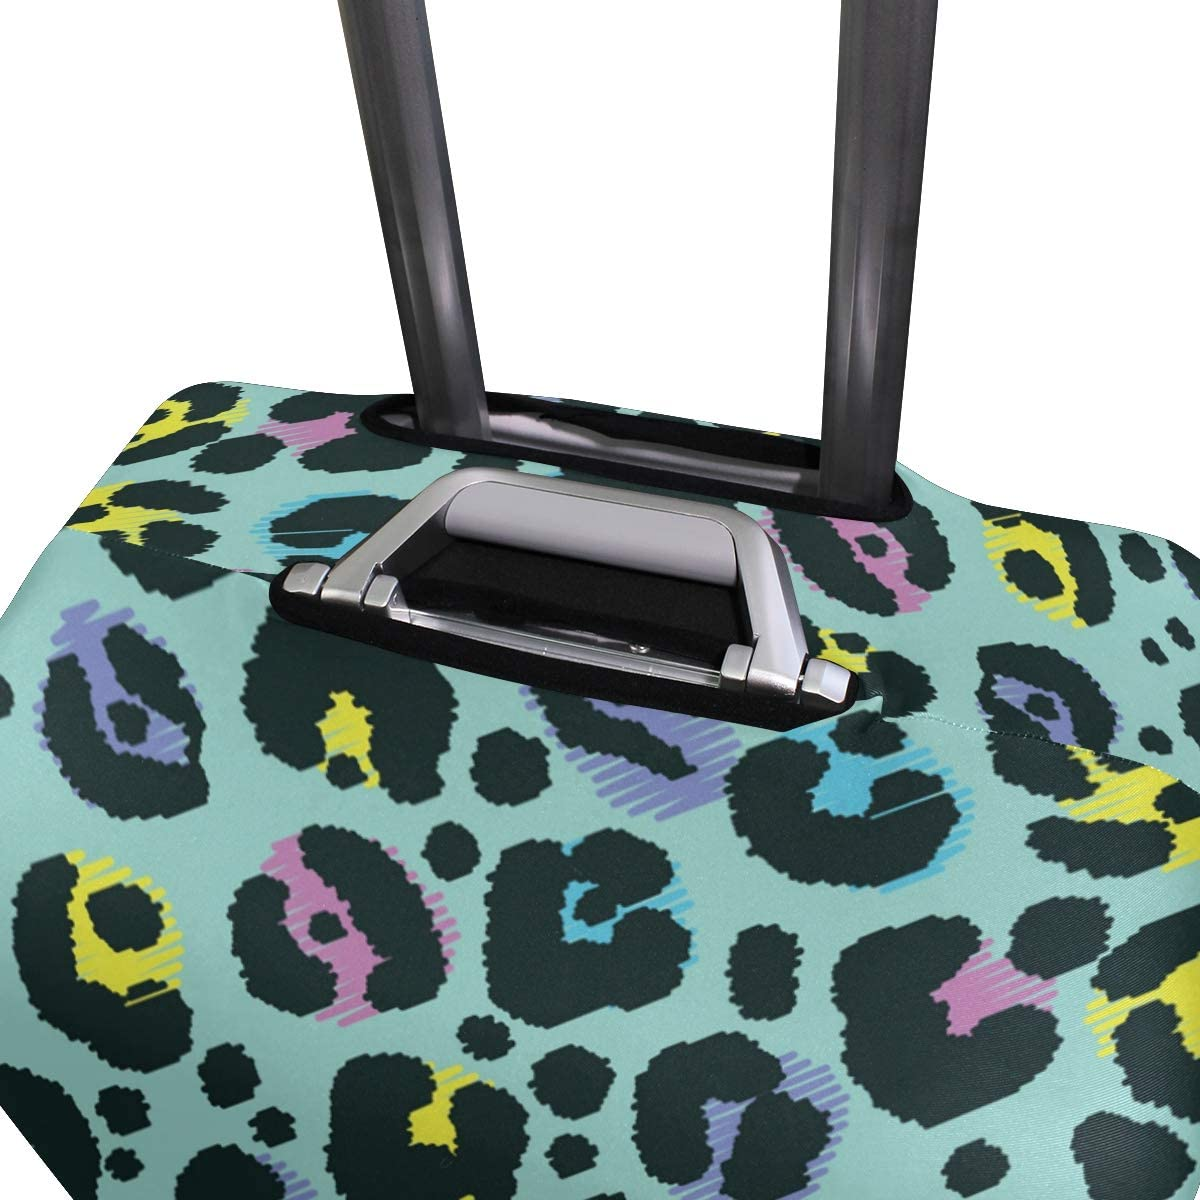 Travel Luggage Cover Colorful Abstract Animal Stains Suitcase Protector